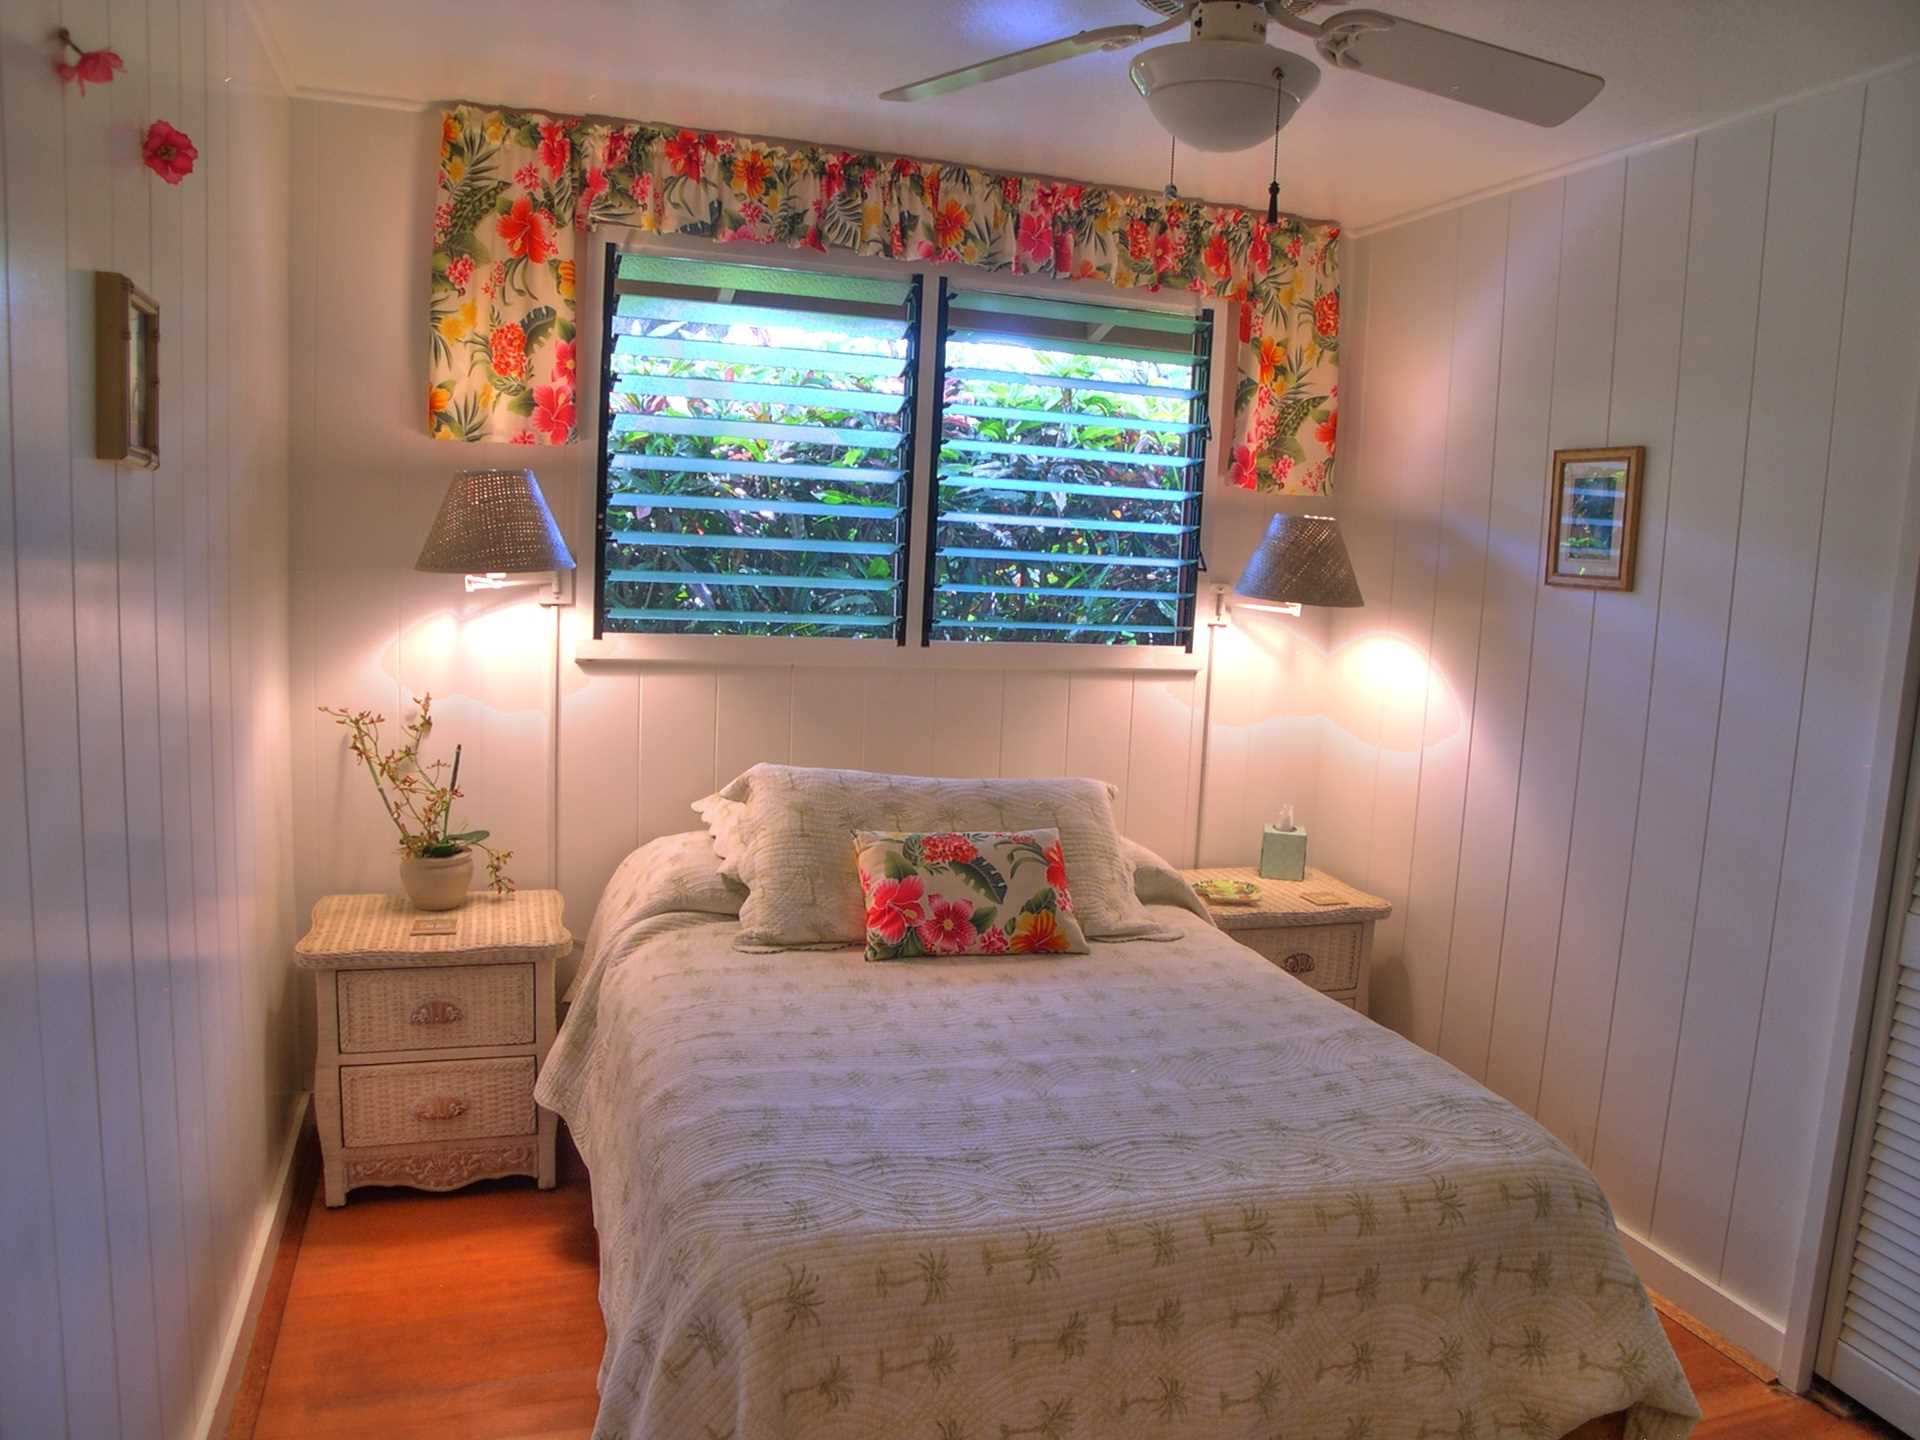 The Hula Room is a fun little room with a double bed